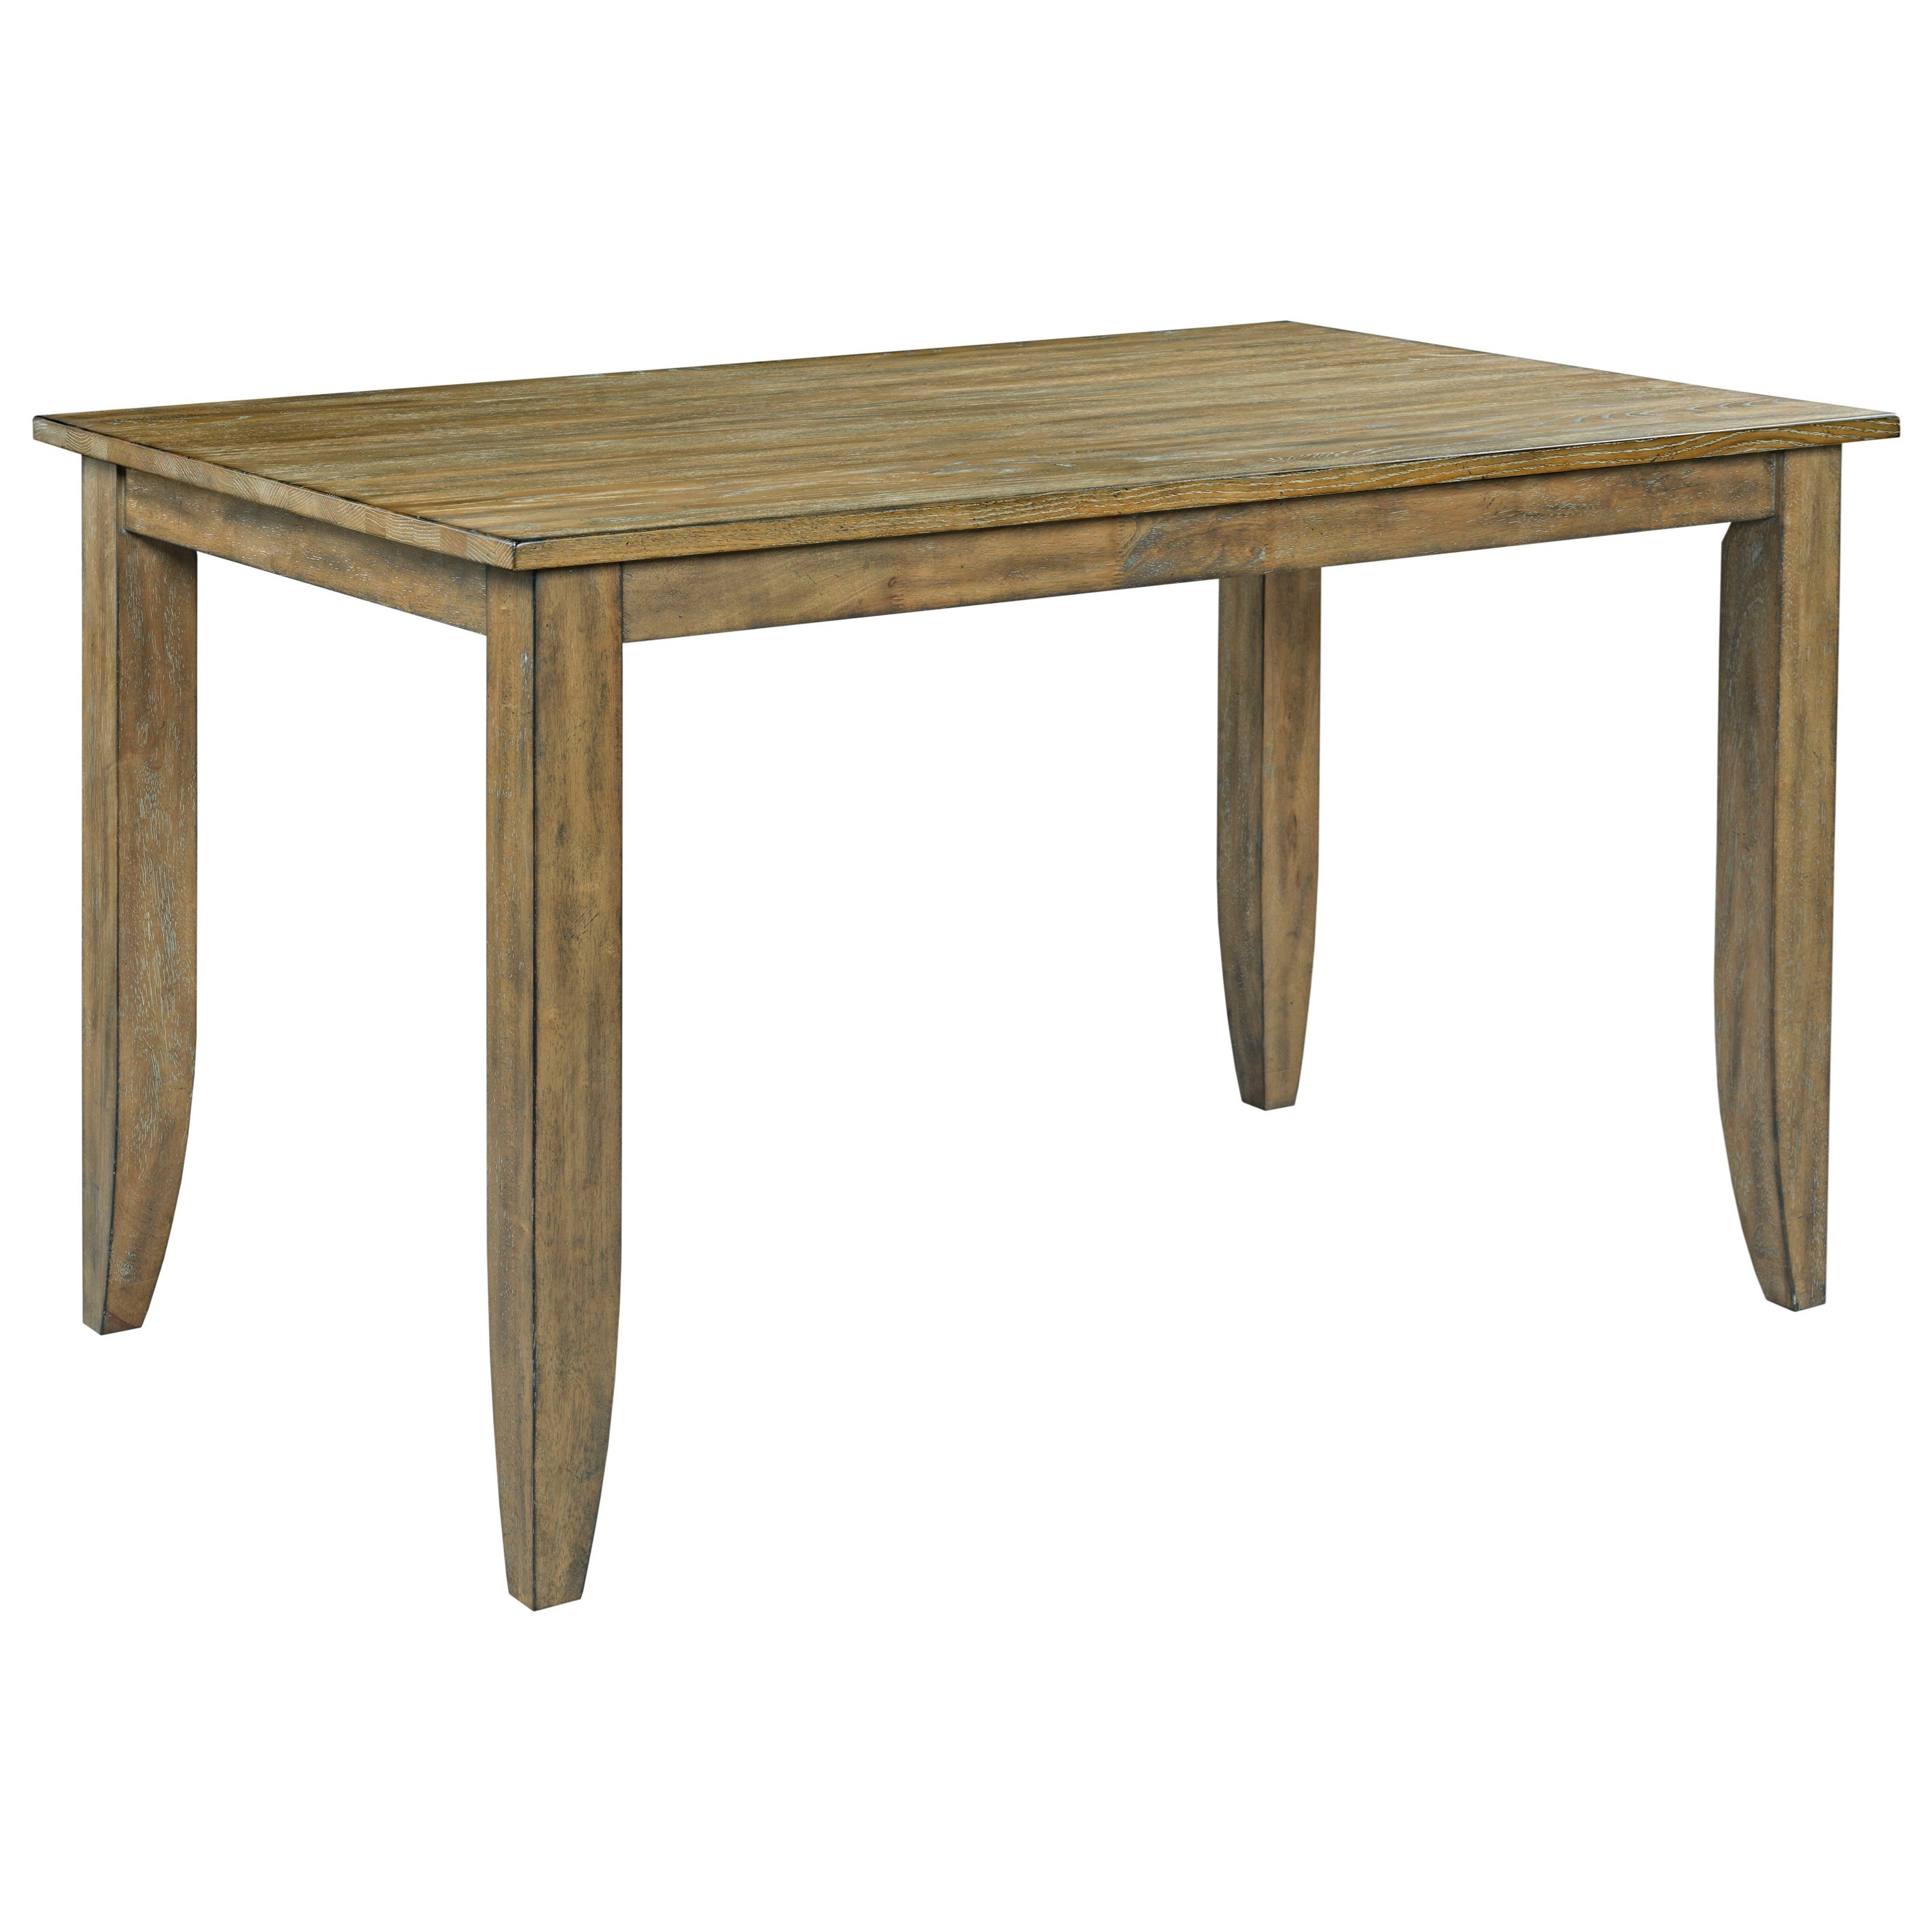 The Nook Counter Height Leg Table by Kincaid Furniture at Johnny Janosik